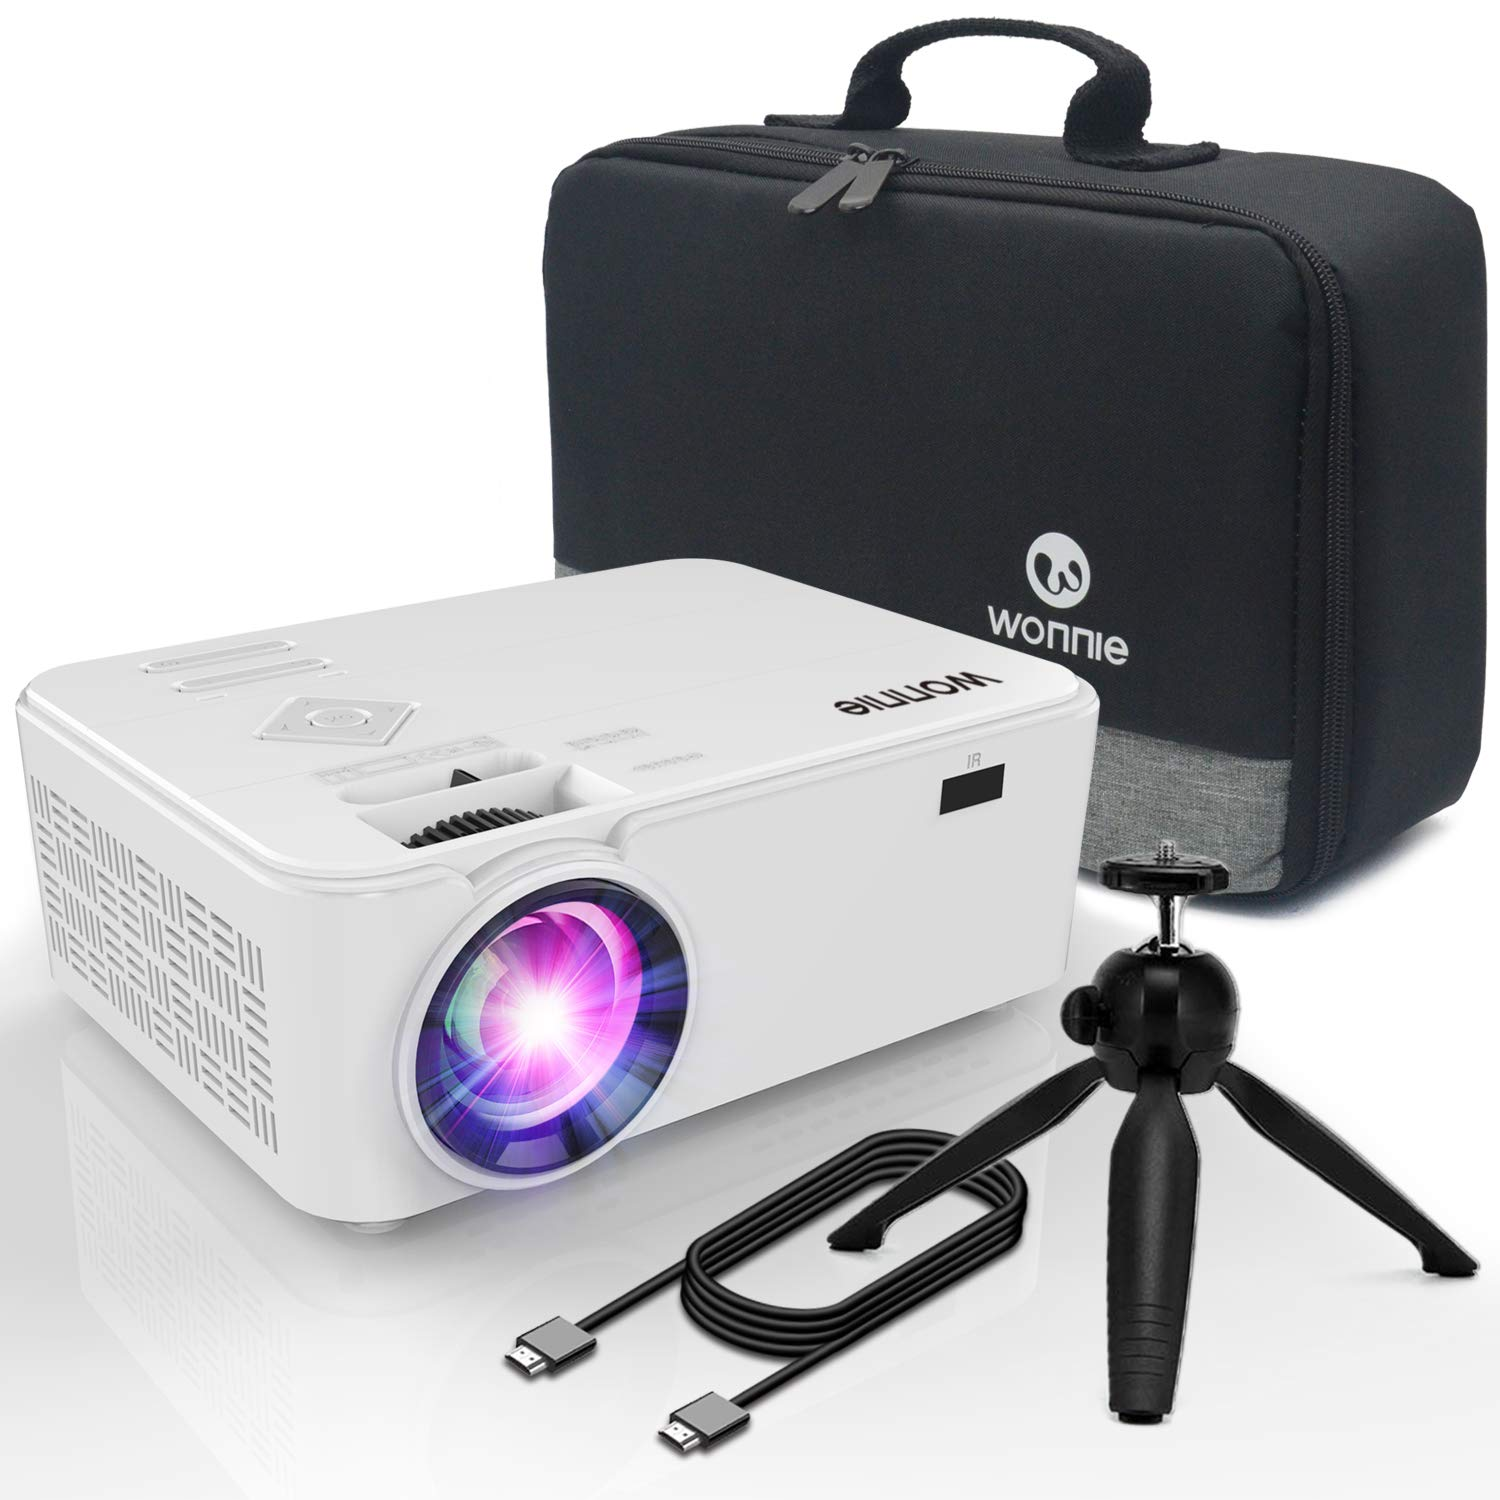 WONNIE Bluetooth Projector, Portable LCD Projector 2600 Lumens with Carrying Bag and Tripod, Compatible with Smartphone, TV Stick,Roku, PS4, Xbox, Full HD 1080P Supported